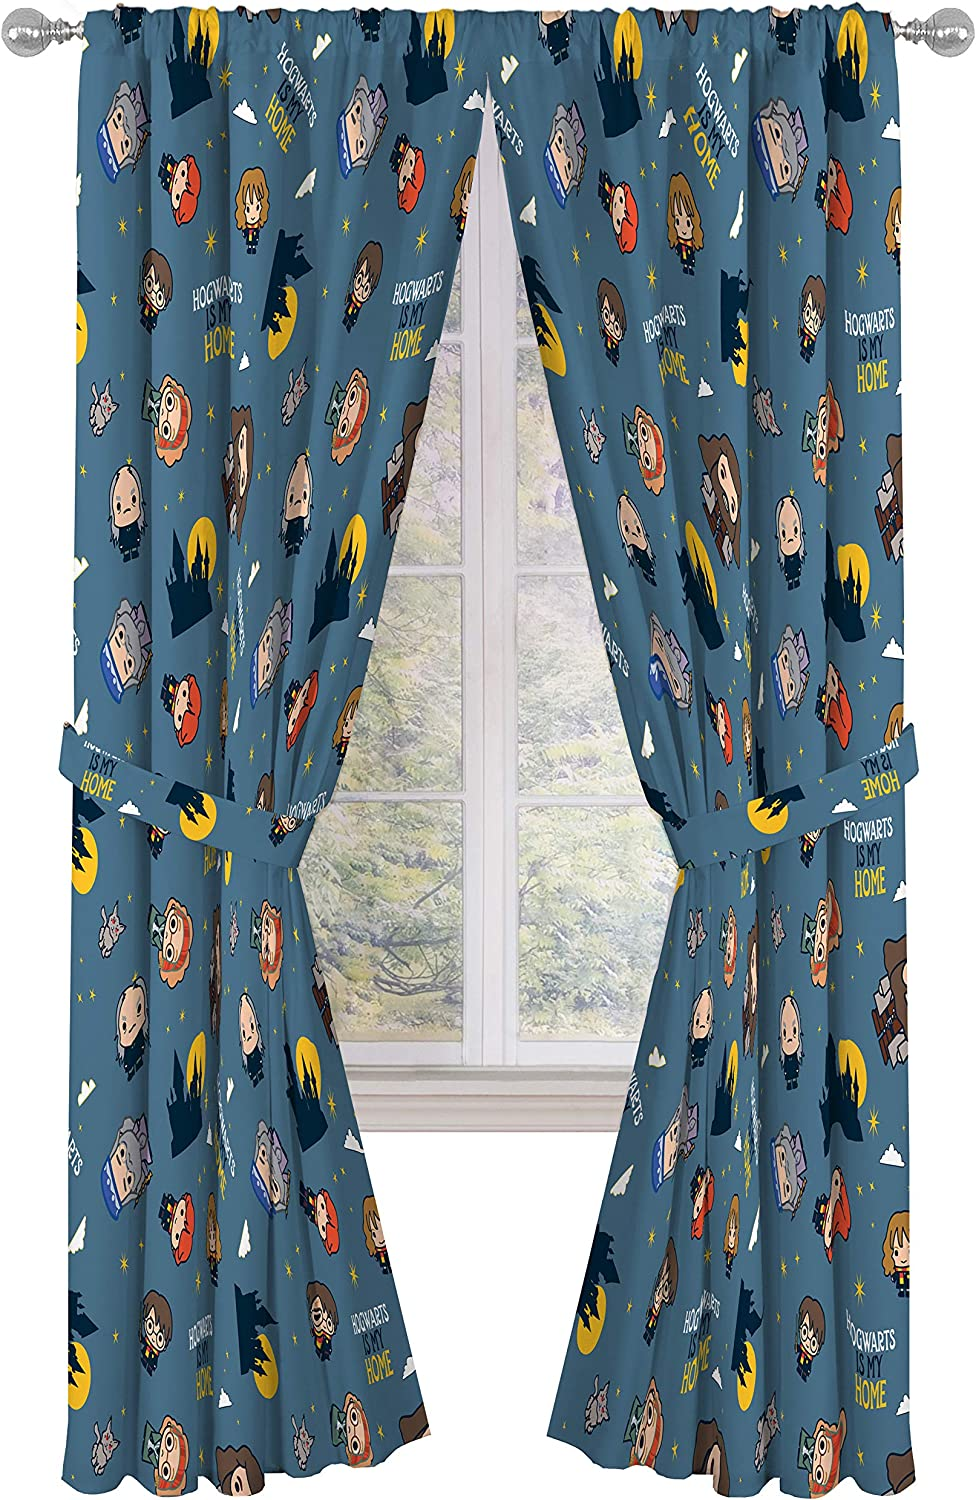 """Harry Potter Hogwarts Is My Home 84"""" Inch Drapes - Beautiful Room Décor & Easy Set Up Bedding Features Harry, Ron, & Hermione - Curtains Include 2 Tiebacks, 4 Piece Set (Official Harrt Potter Product)"""